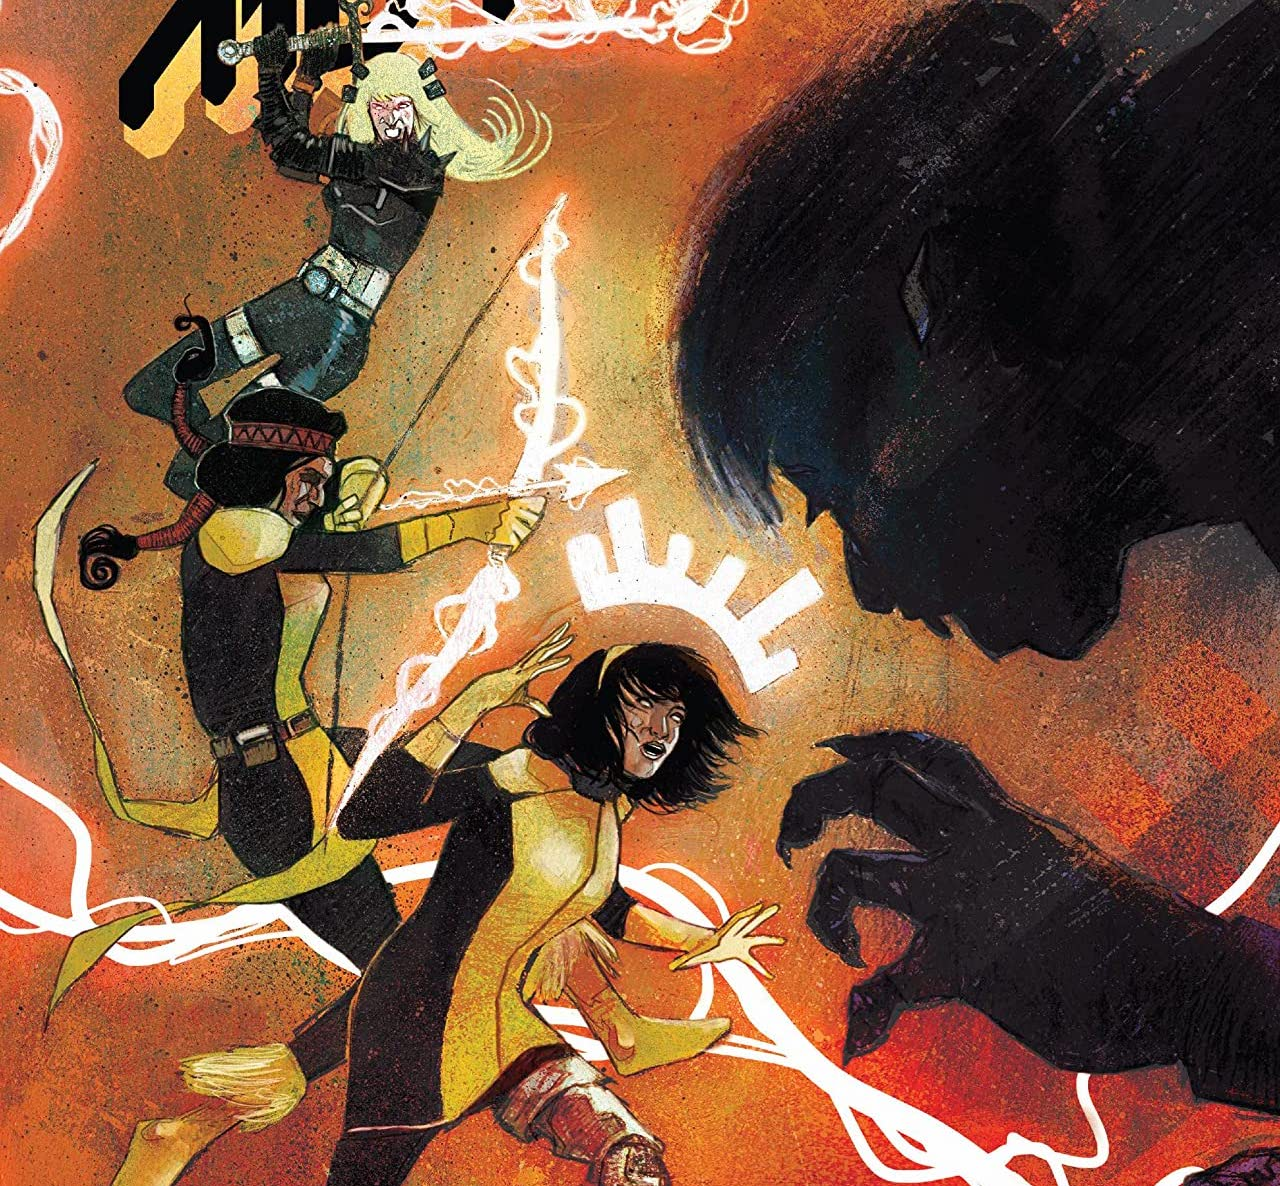 'New Mutants' #21 is exciting, impactful, and sincere